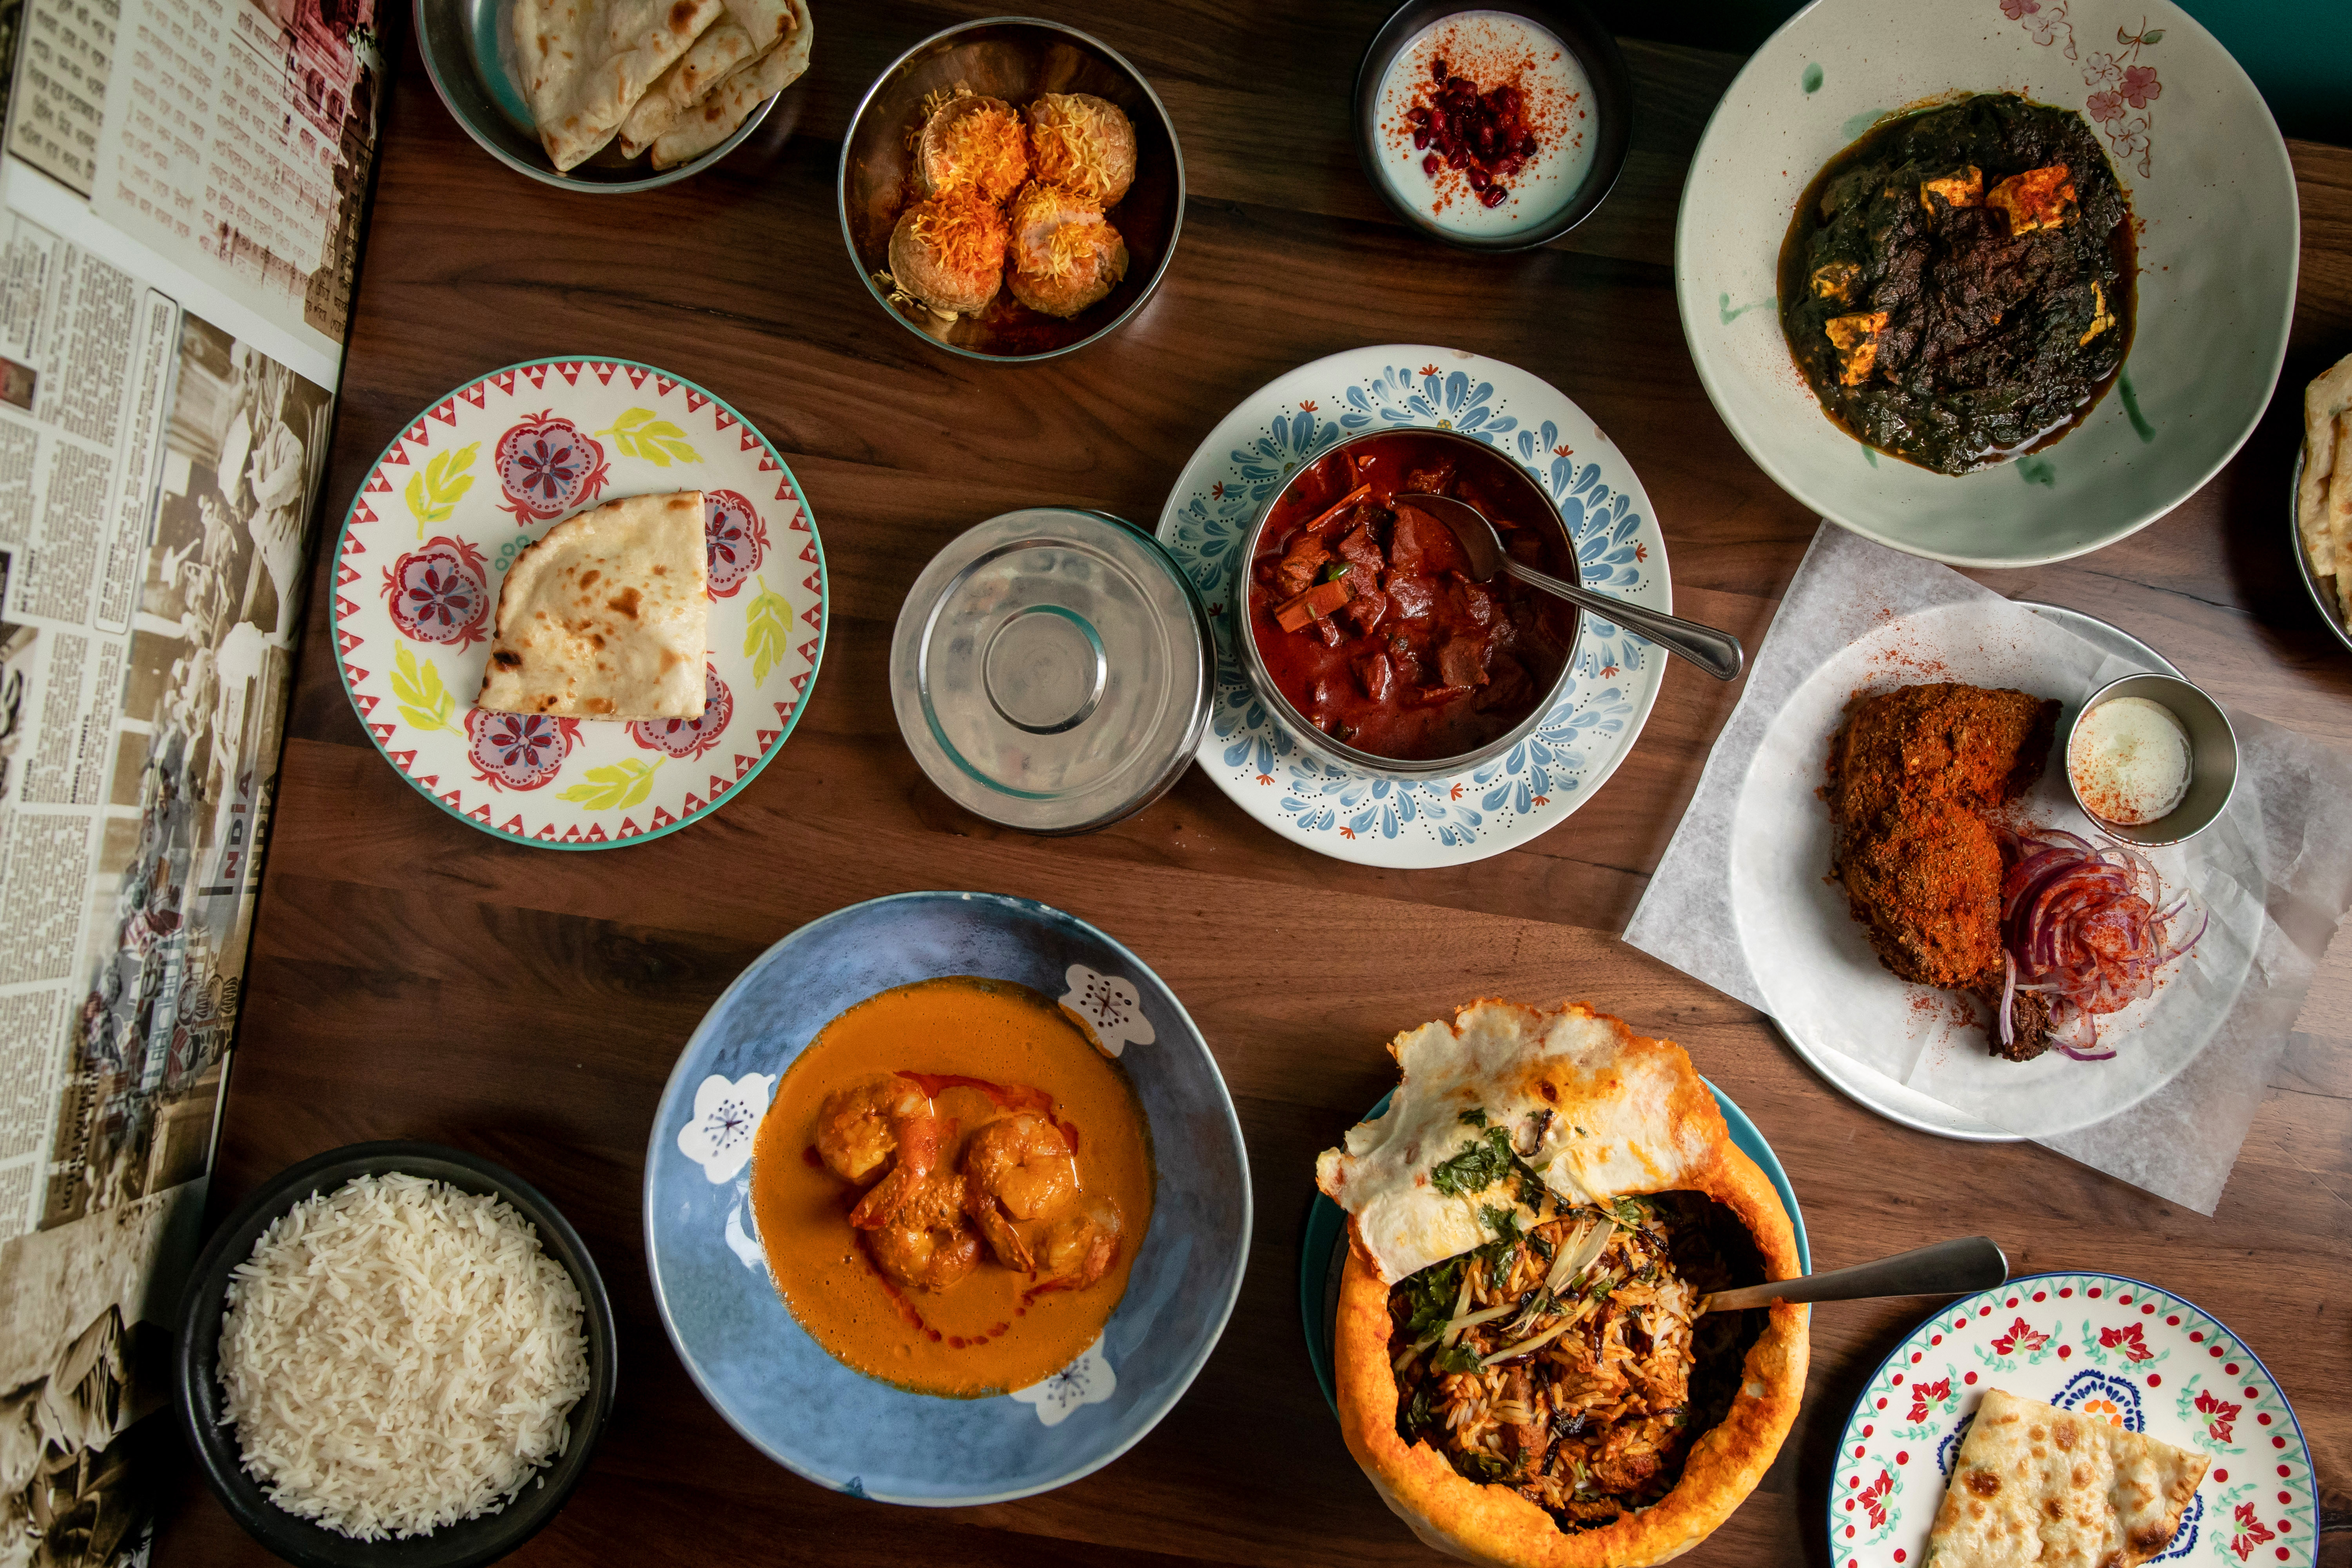 Indian Classics Like Goat Curry Are Unparalleled at LIC Newcomer Adda